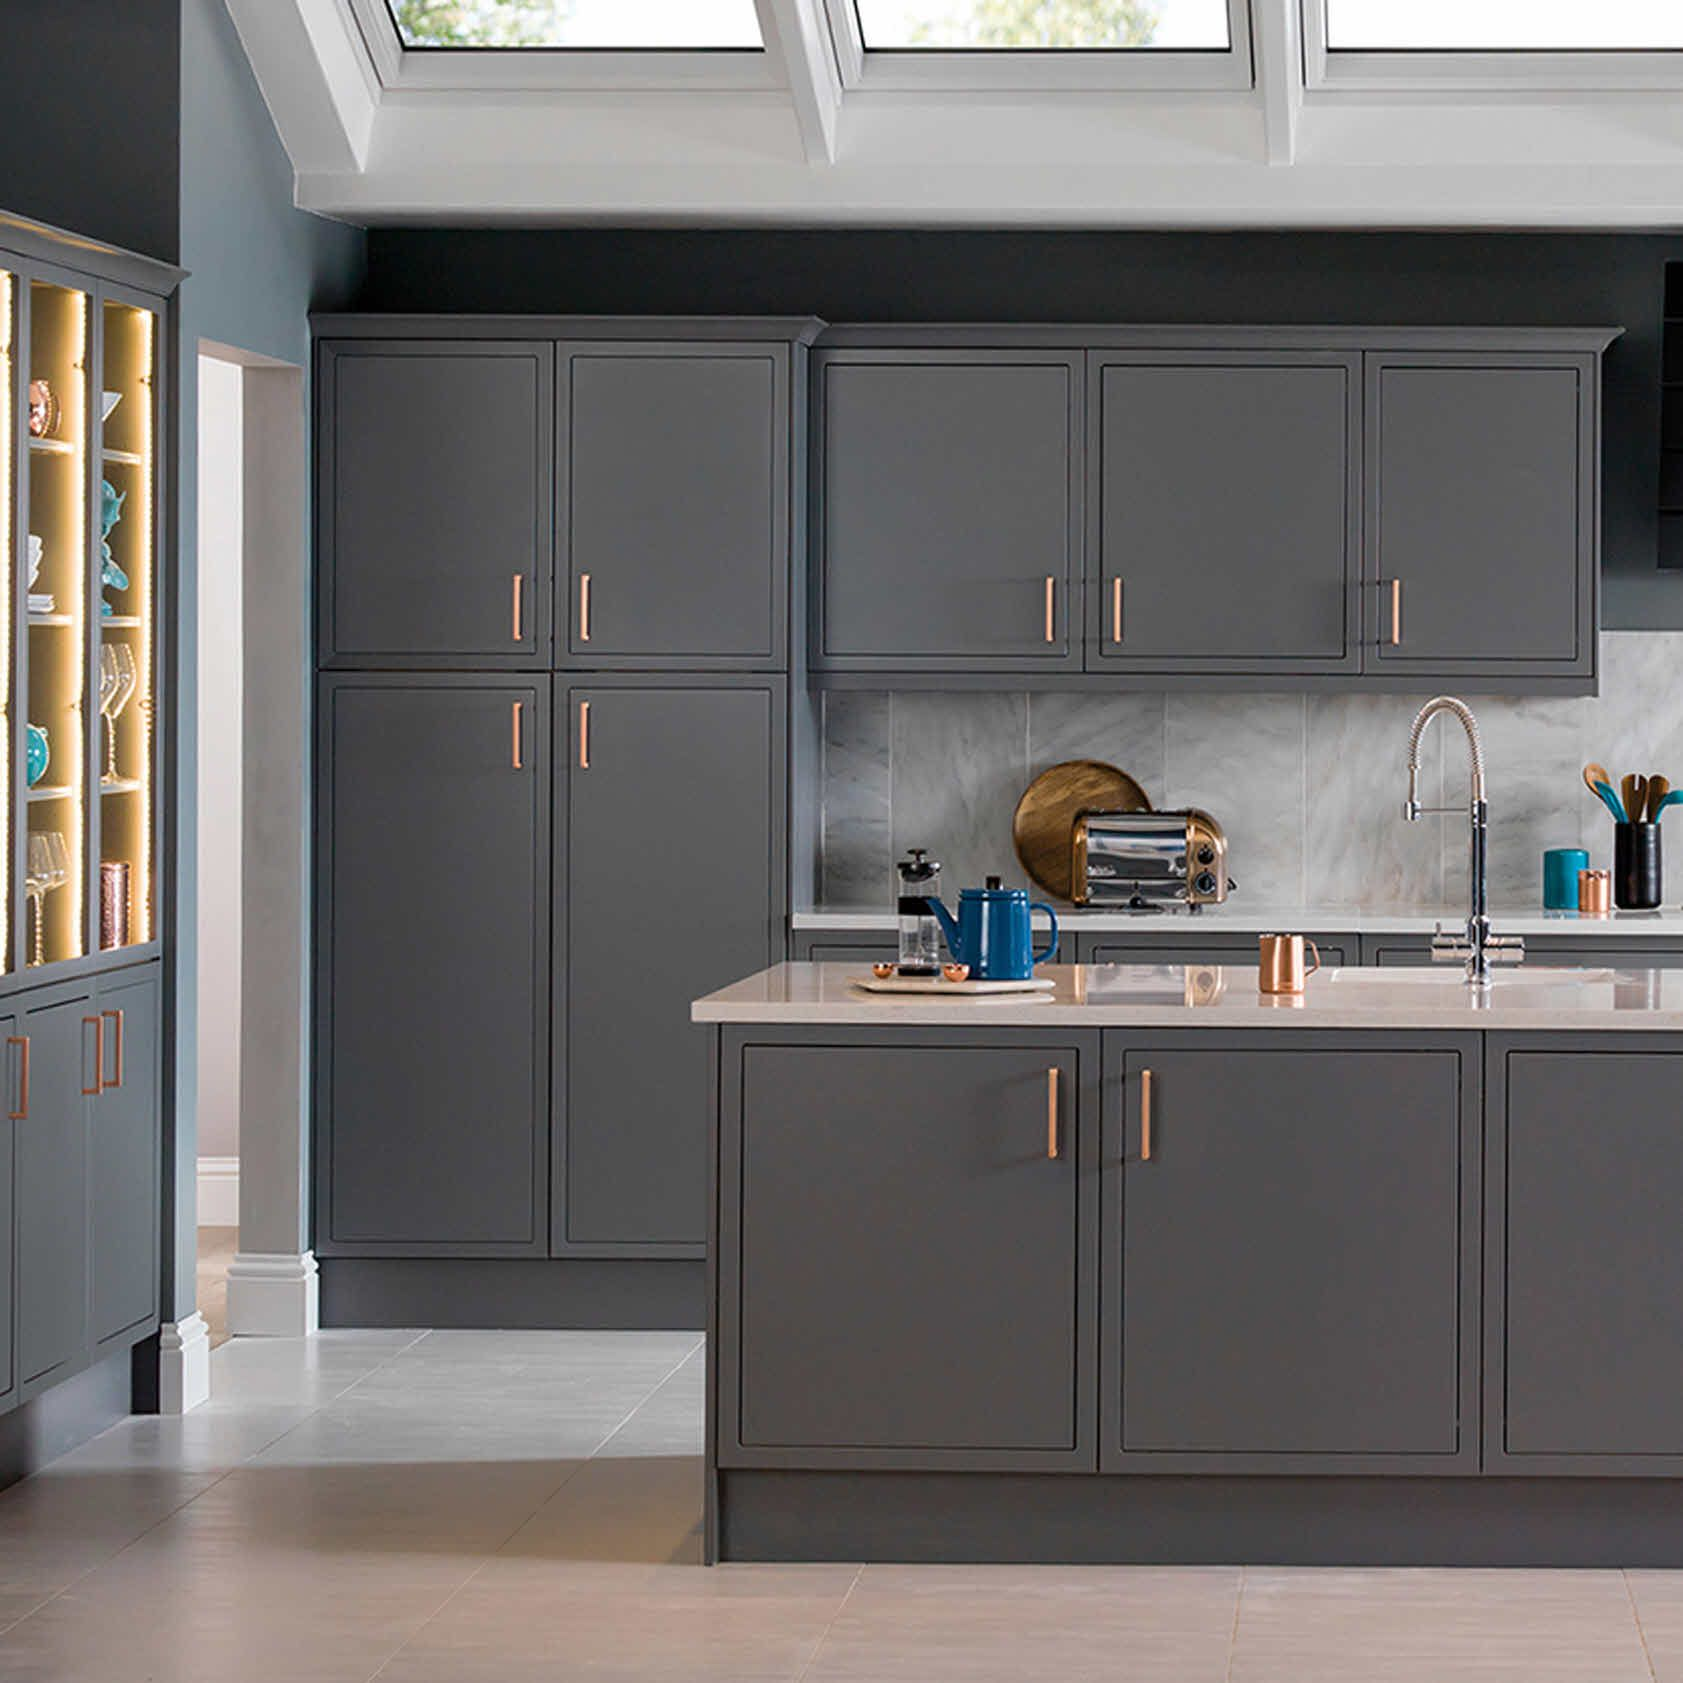 Magnet Kitchen Newbury Grey - Google Search